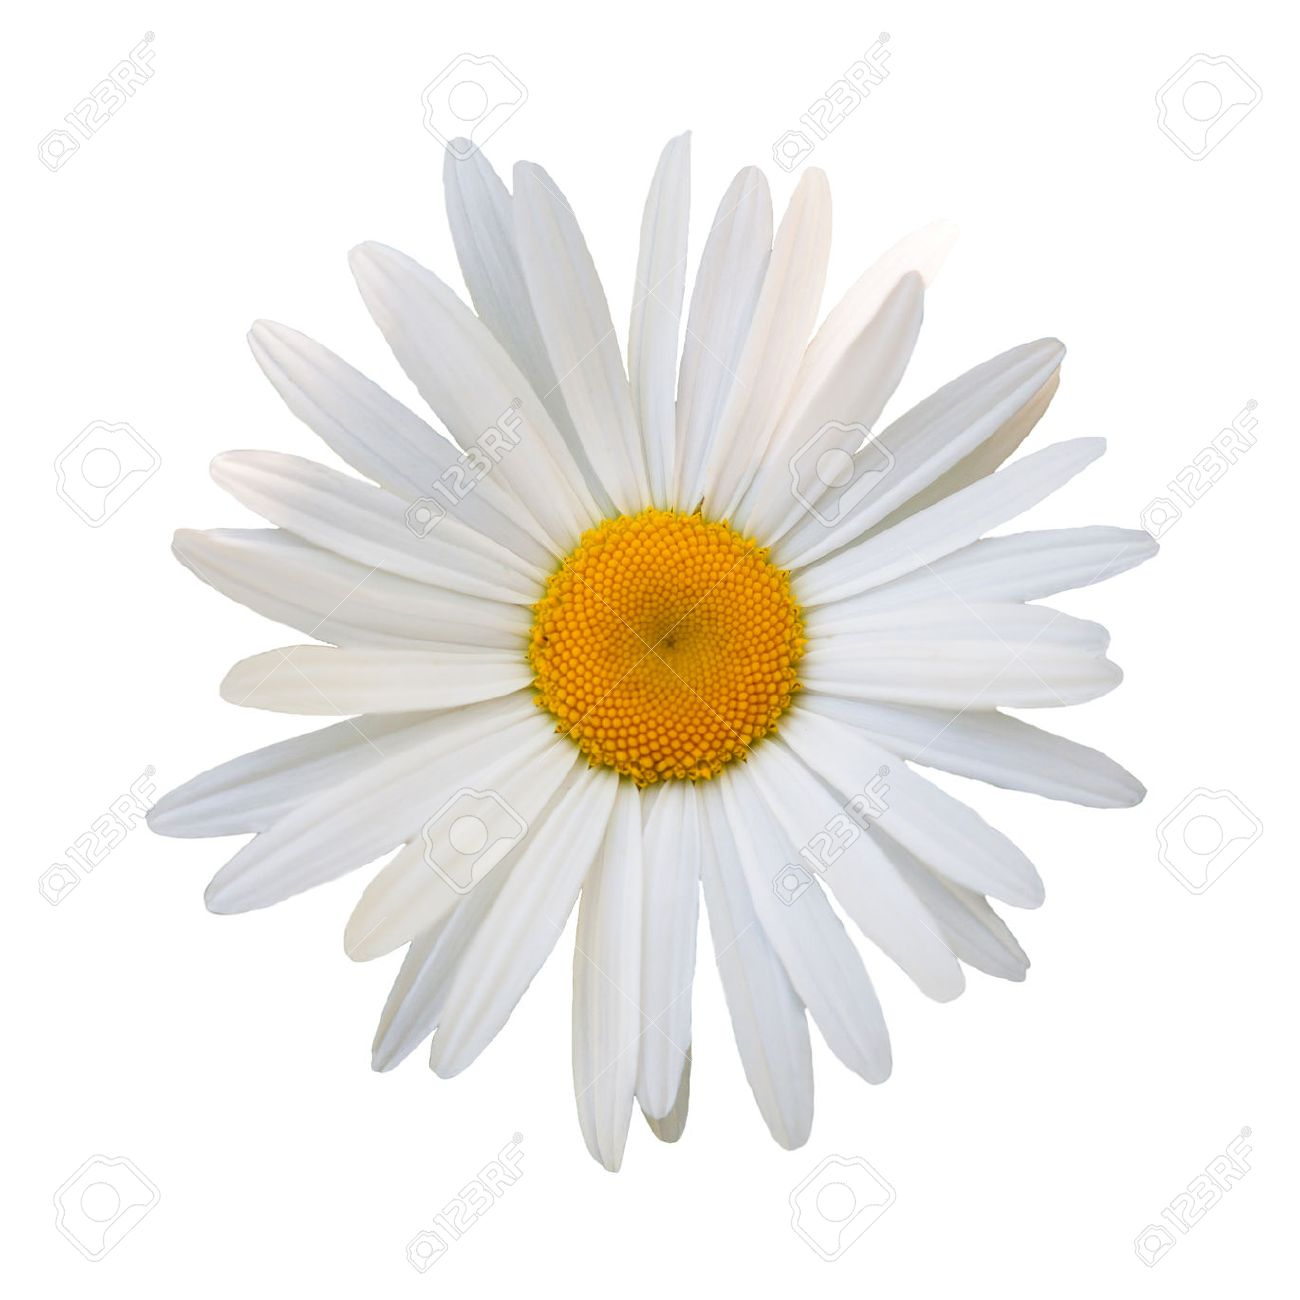 Beautiful flower white daisy on white background stock photo beautiful flower white daisy on white background stock photo 41556534 mightylinksfo